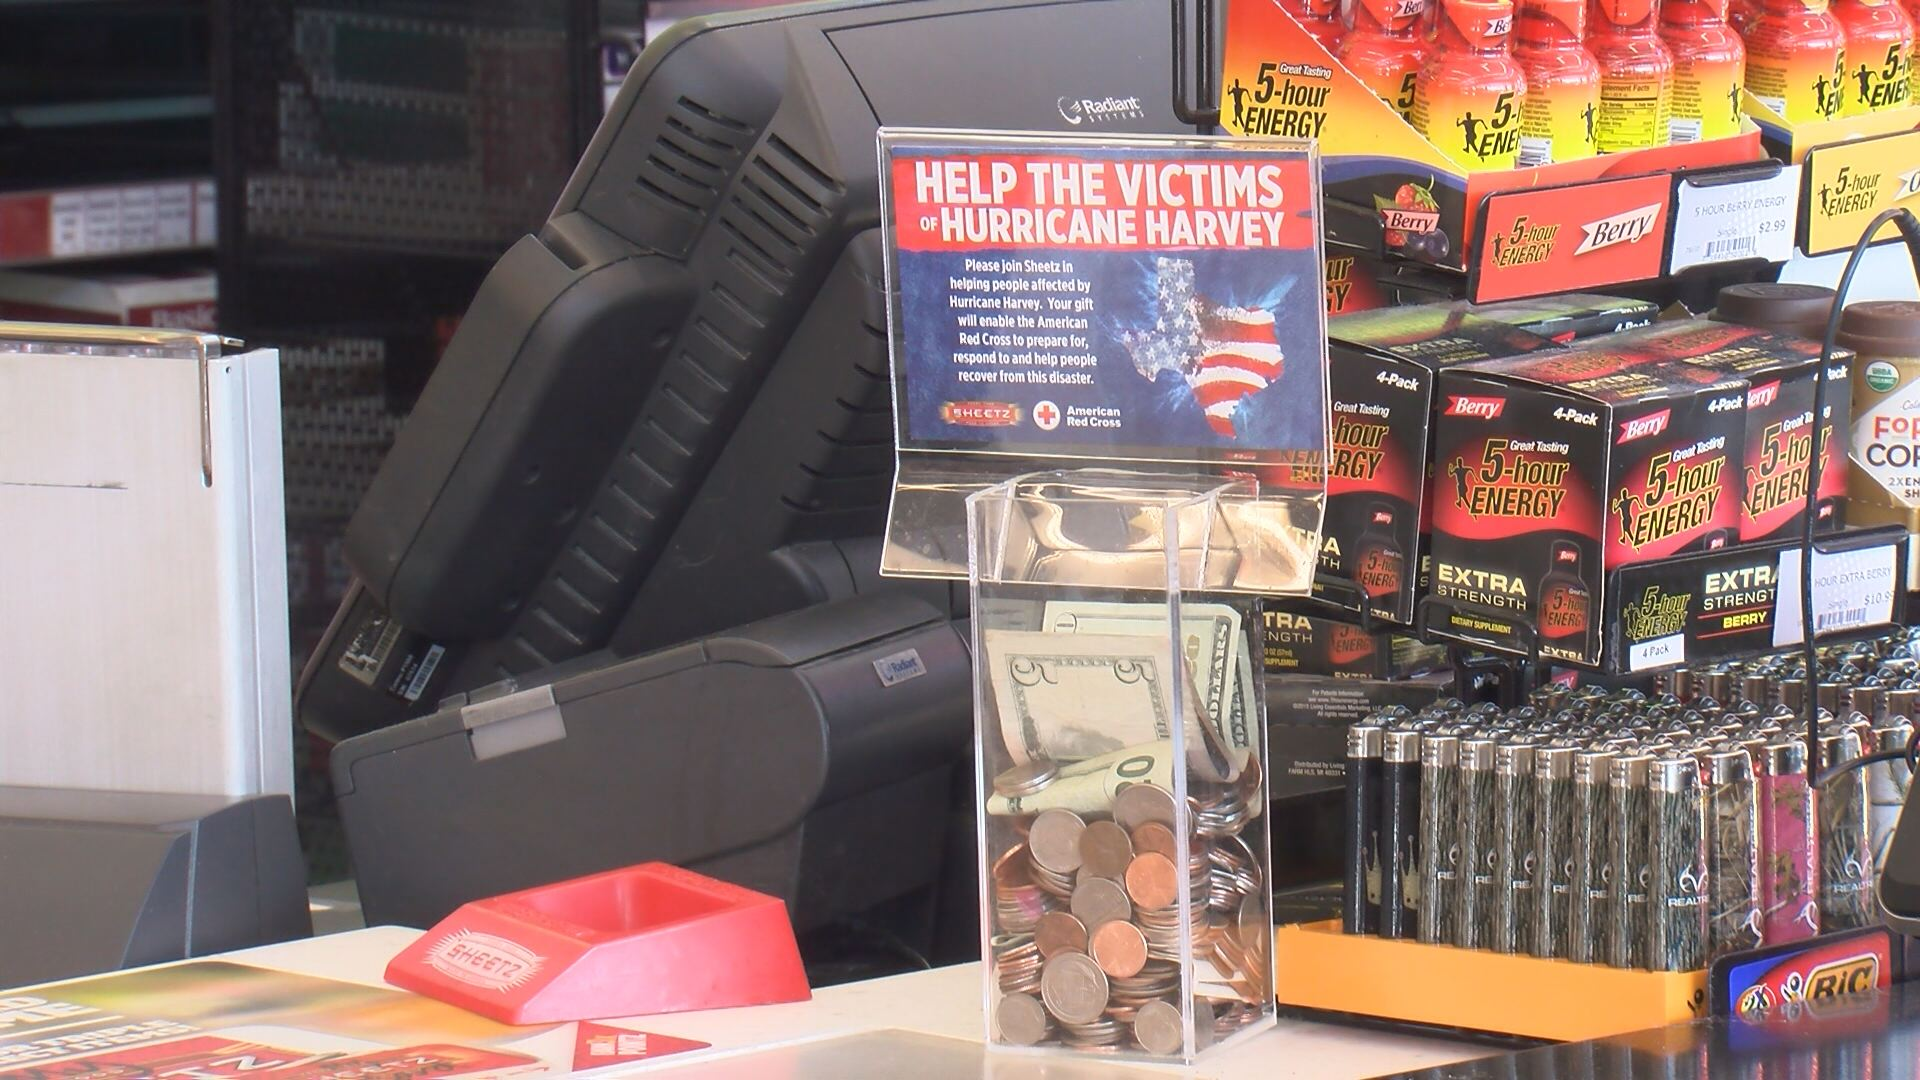 sheetz donations_467422